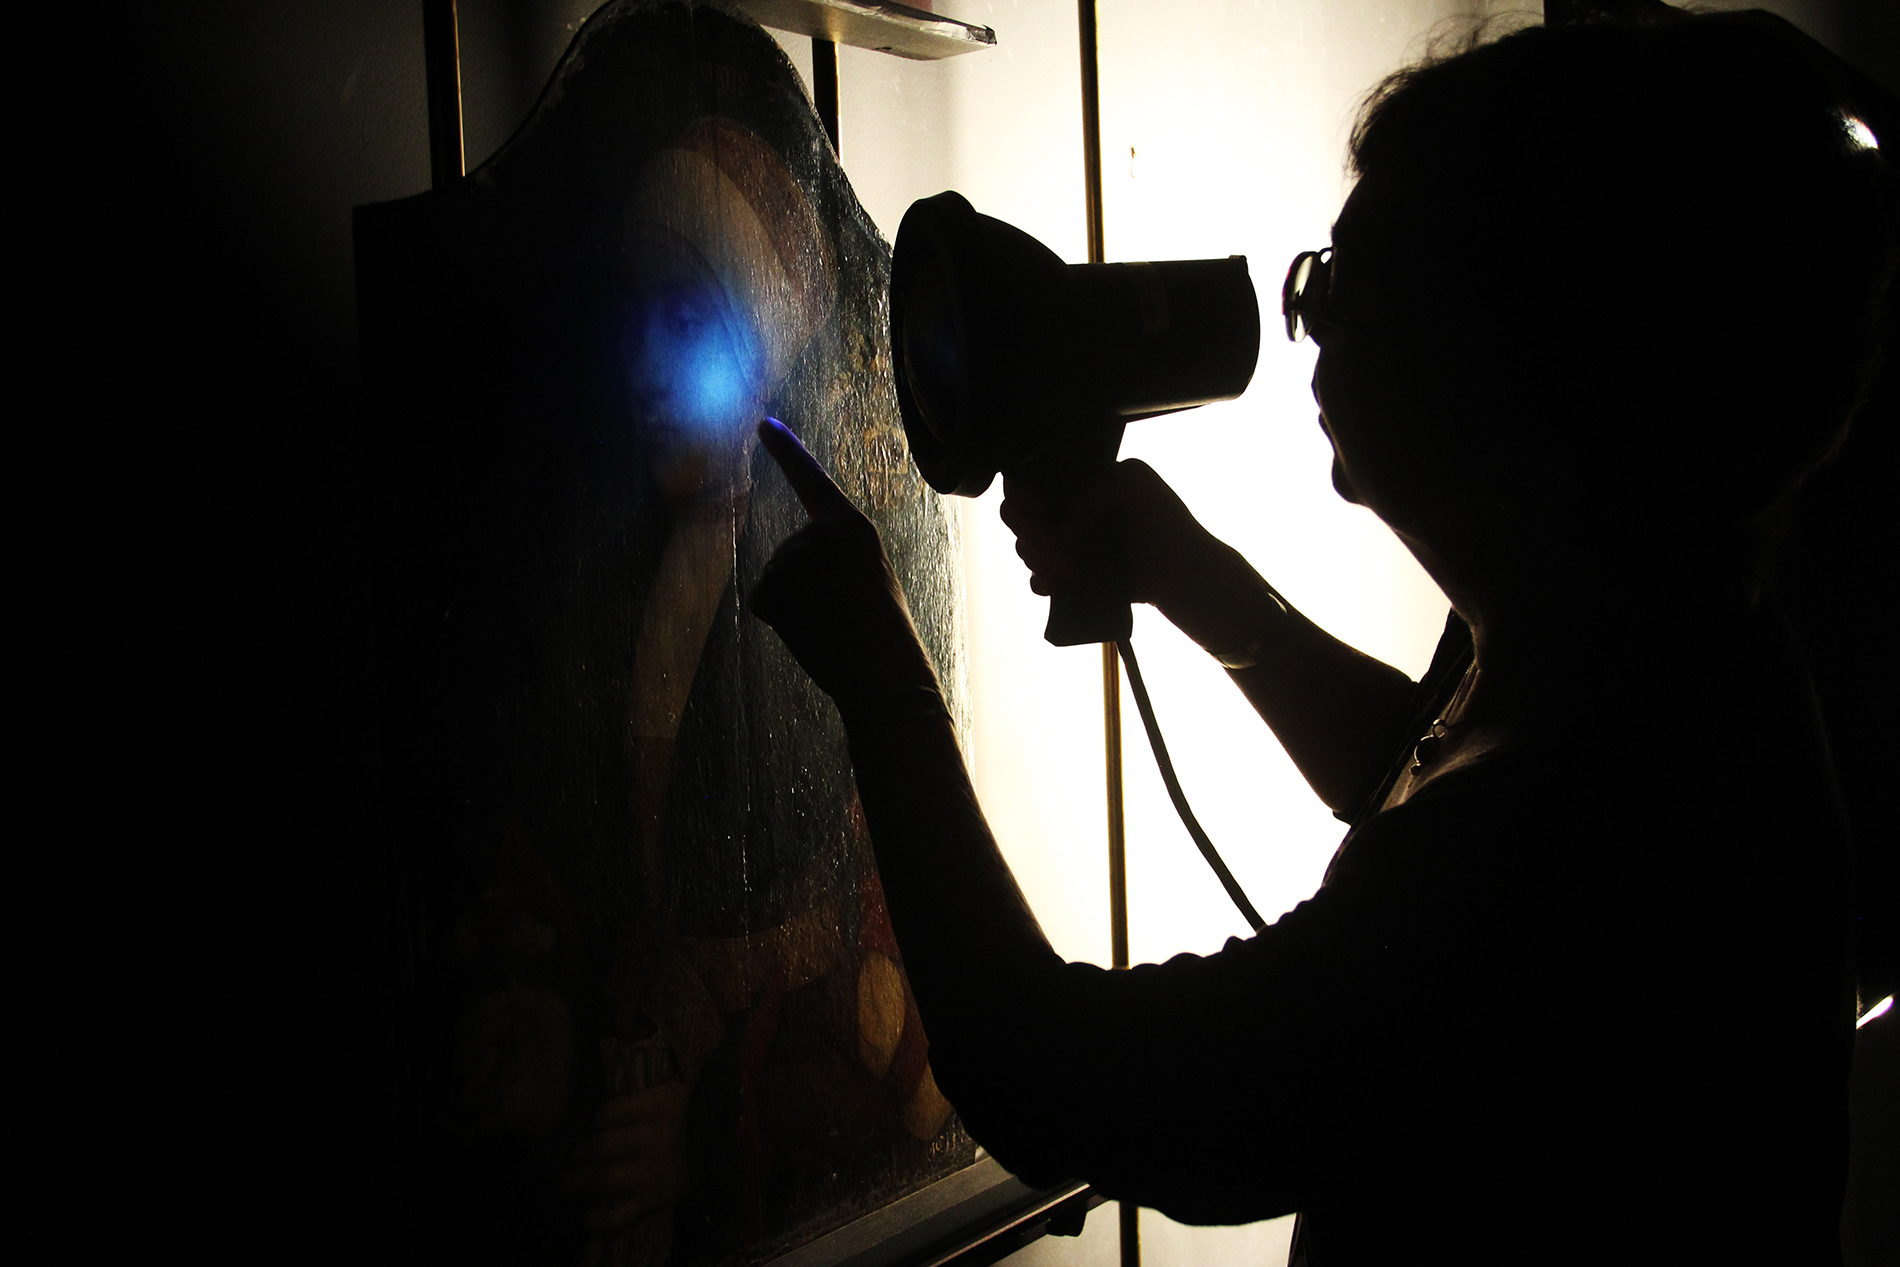 woman shines blacklight on a painting